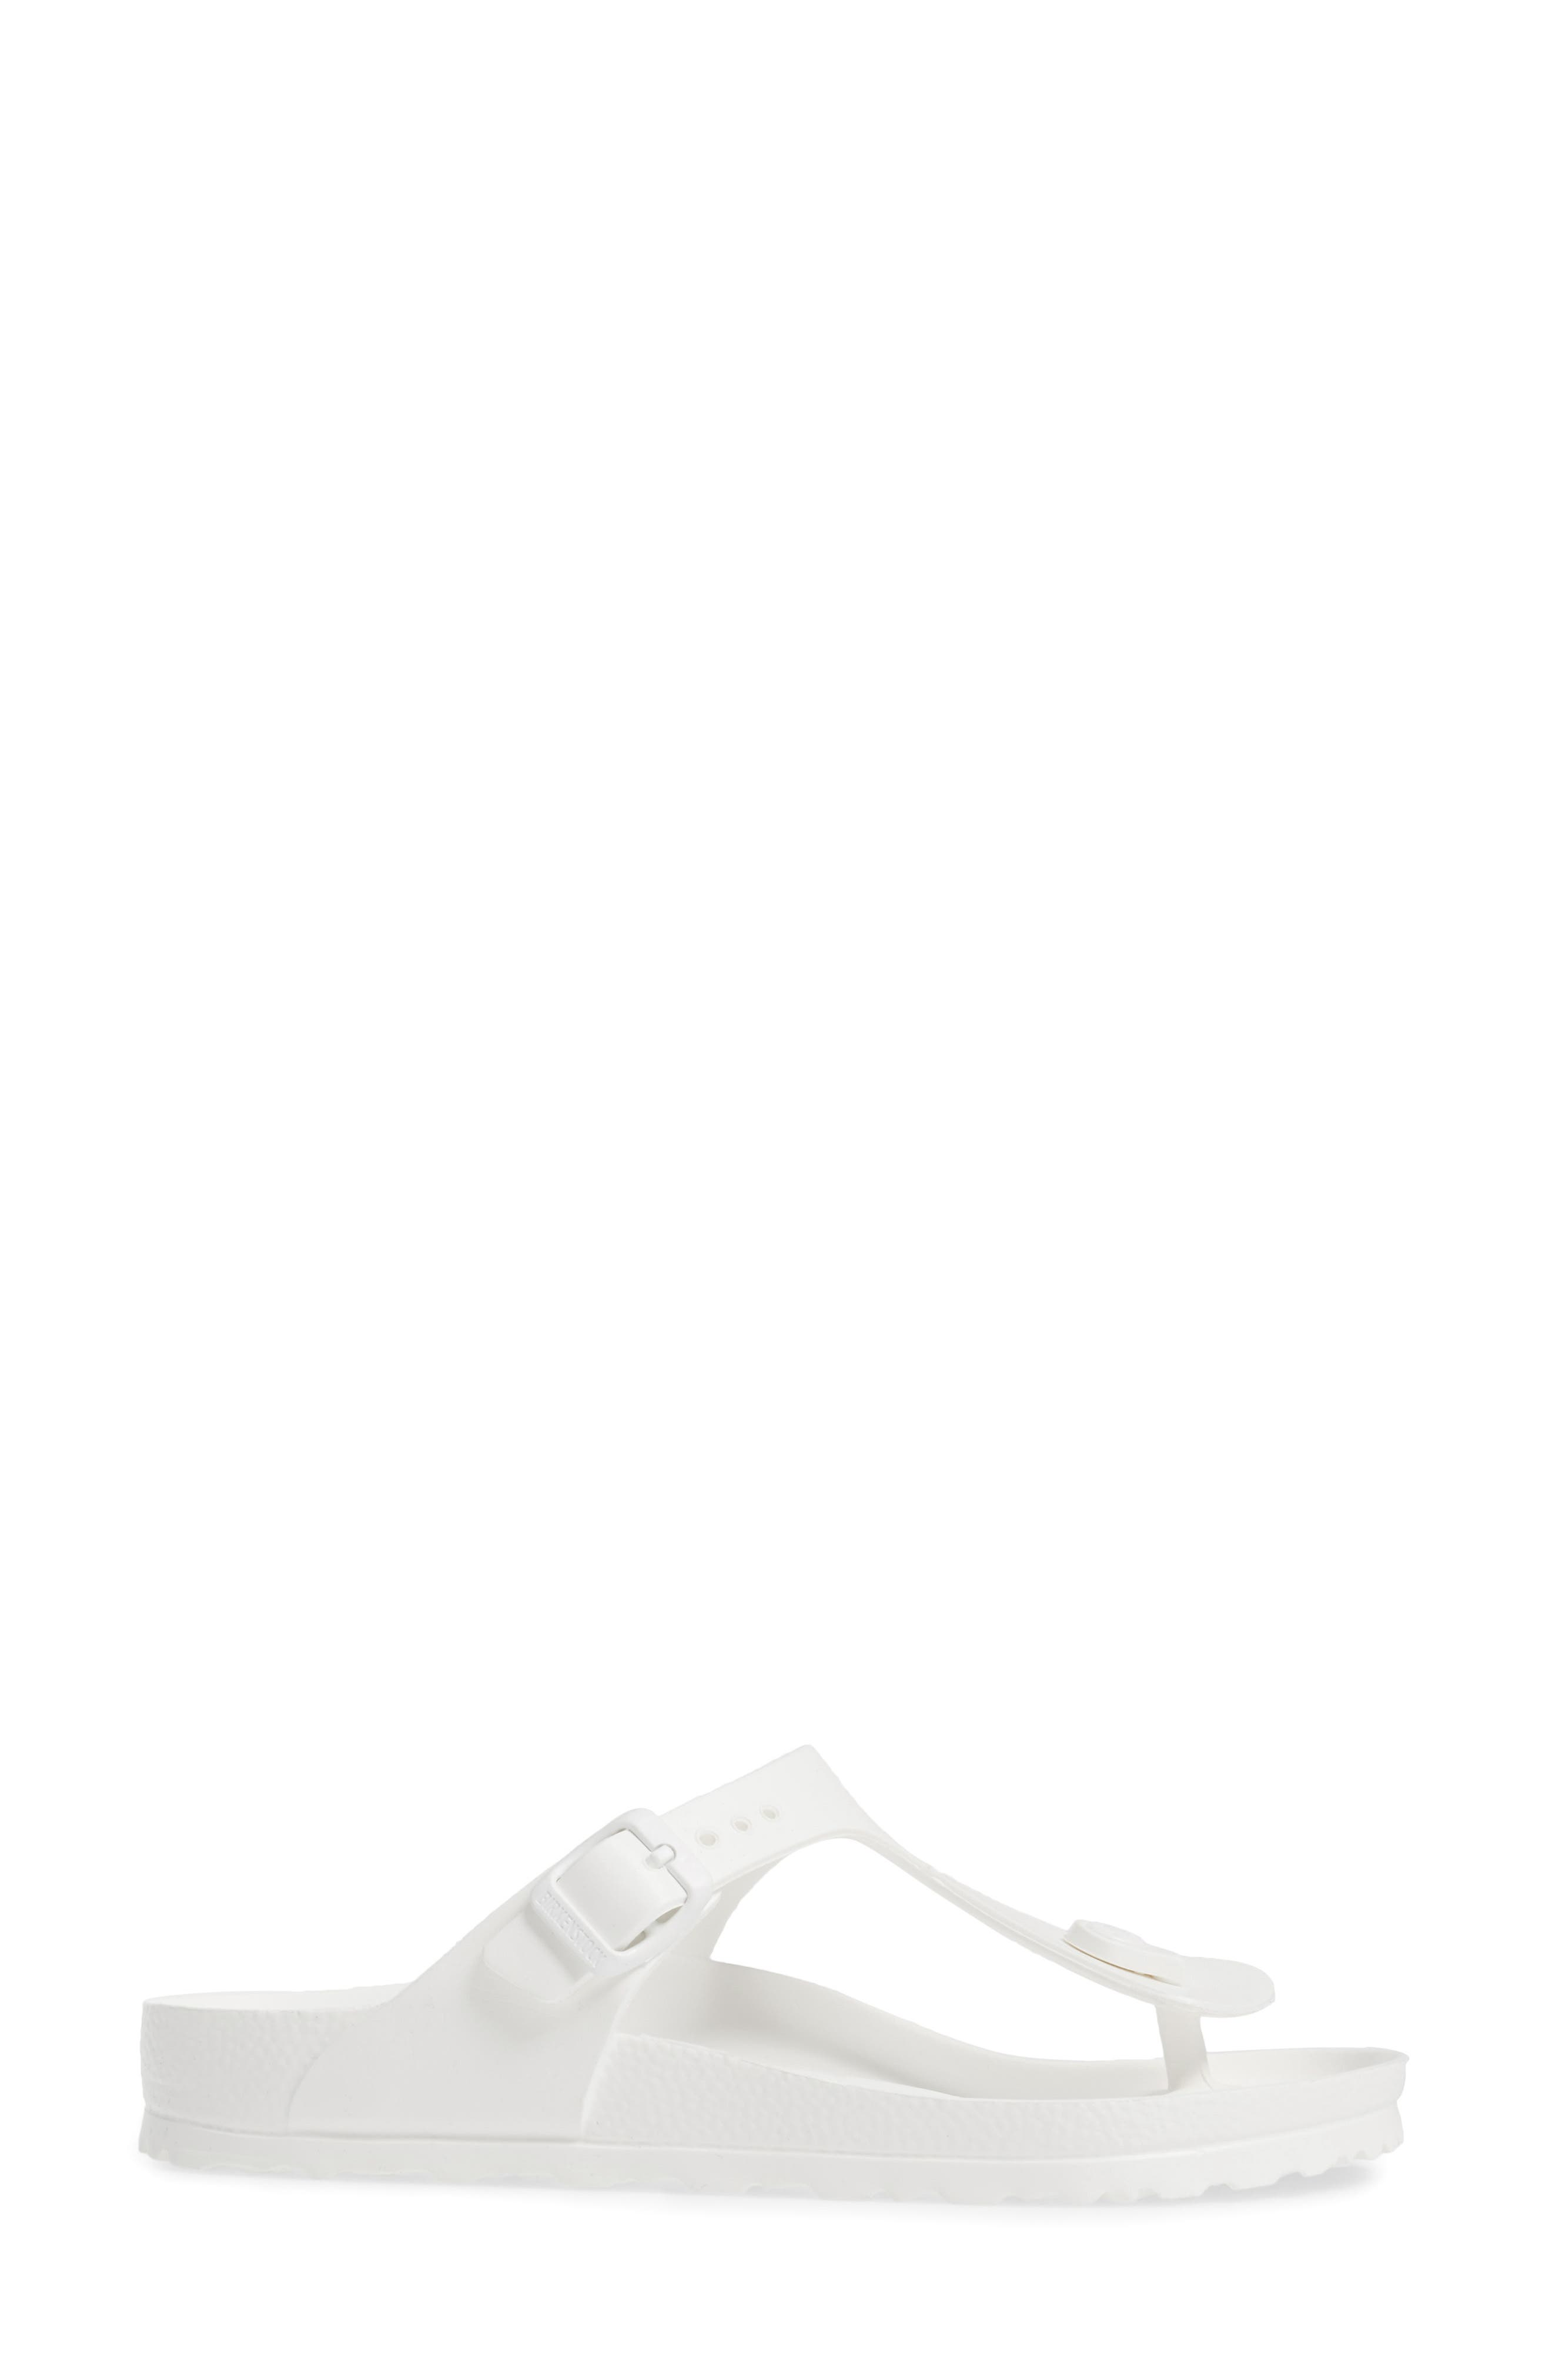 Essentials - Gizeh Flip Flop,                             Alternate thumbnail 3, color,                             WHITE